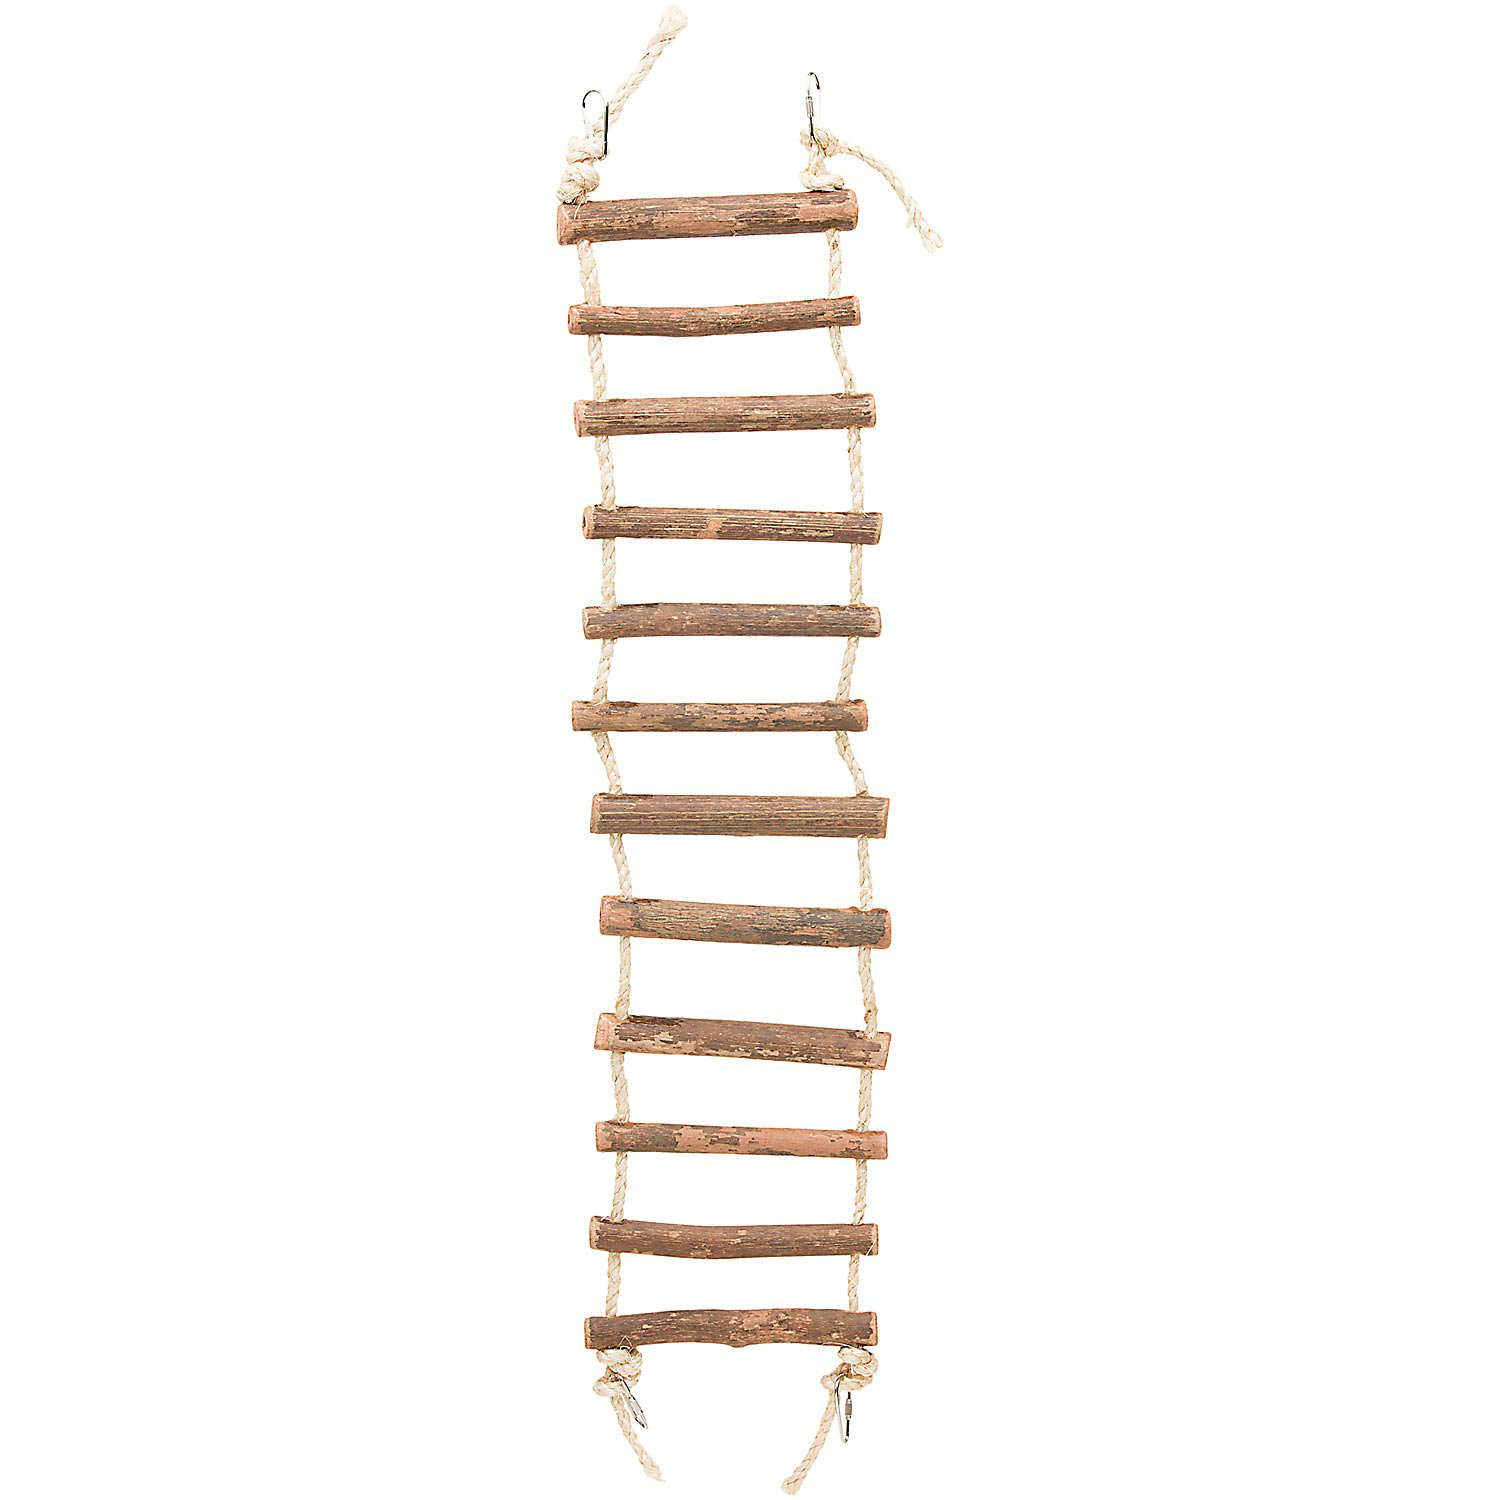 Rope Ladder Backgrounds on Wallpapers Vista